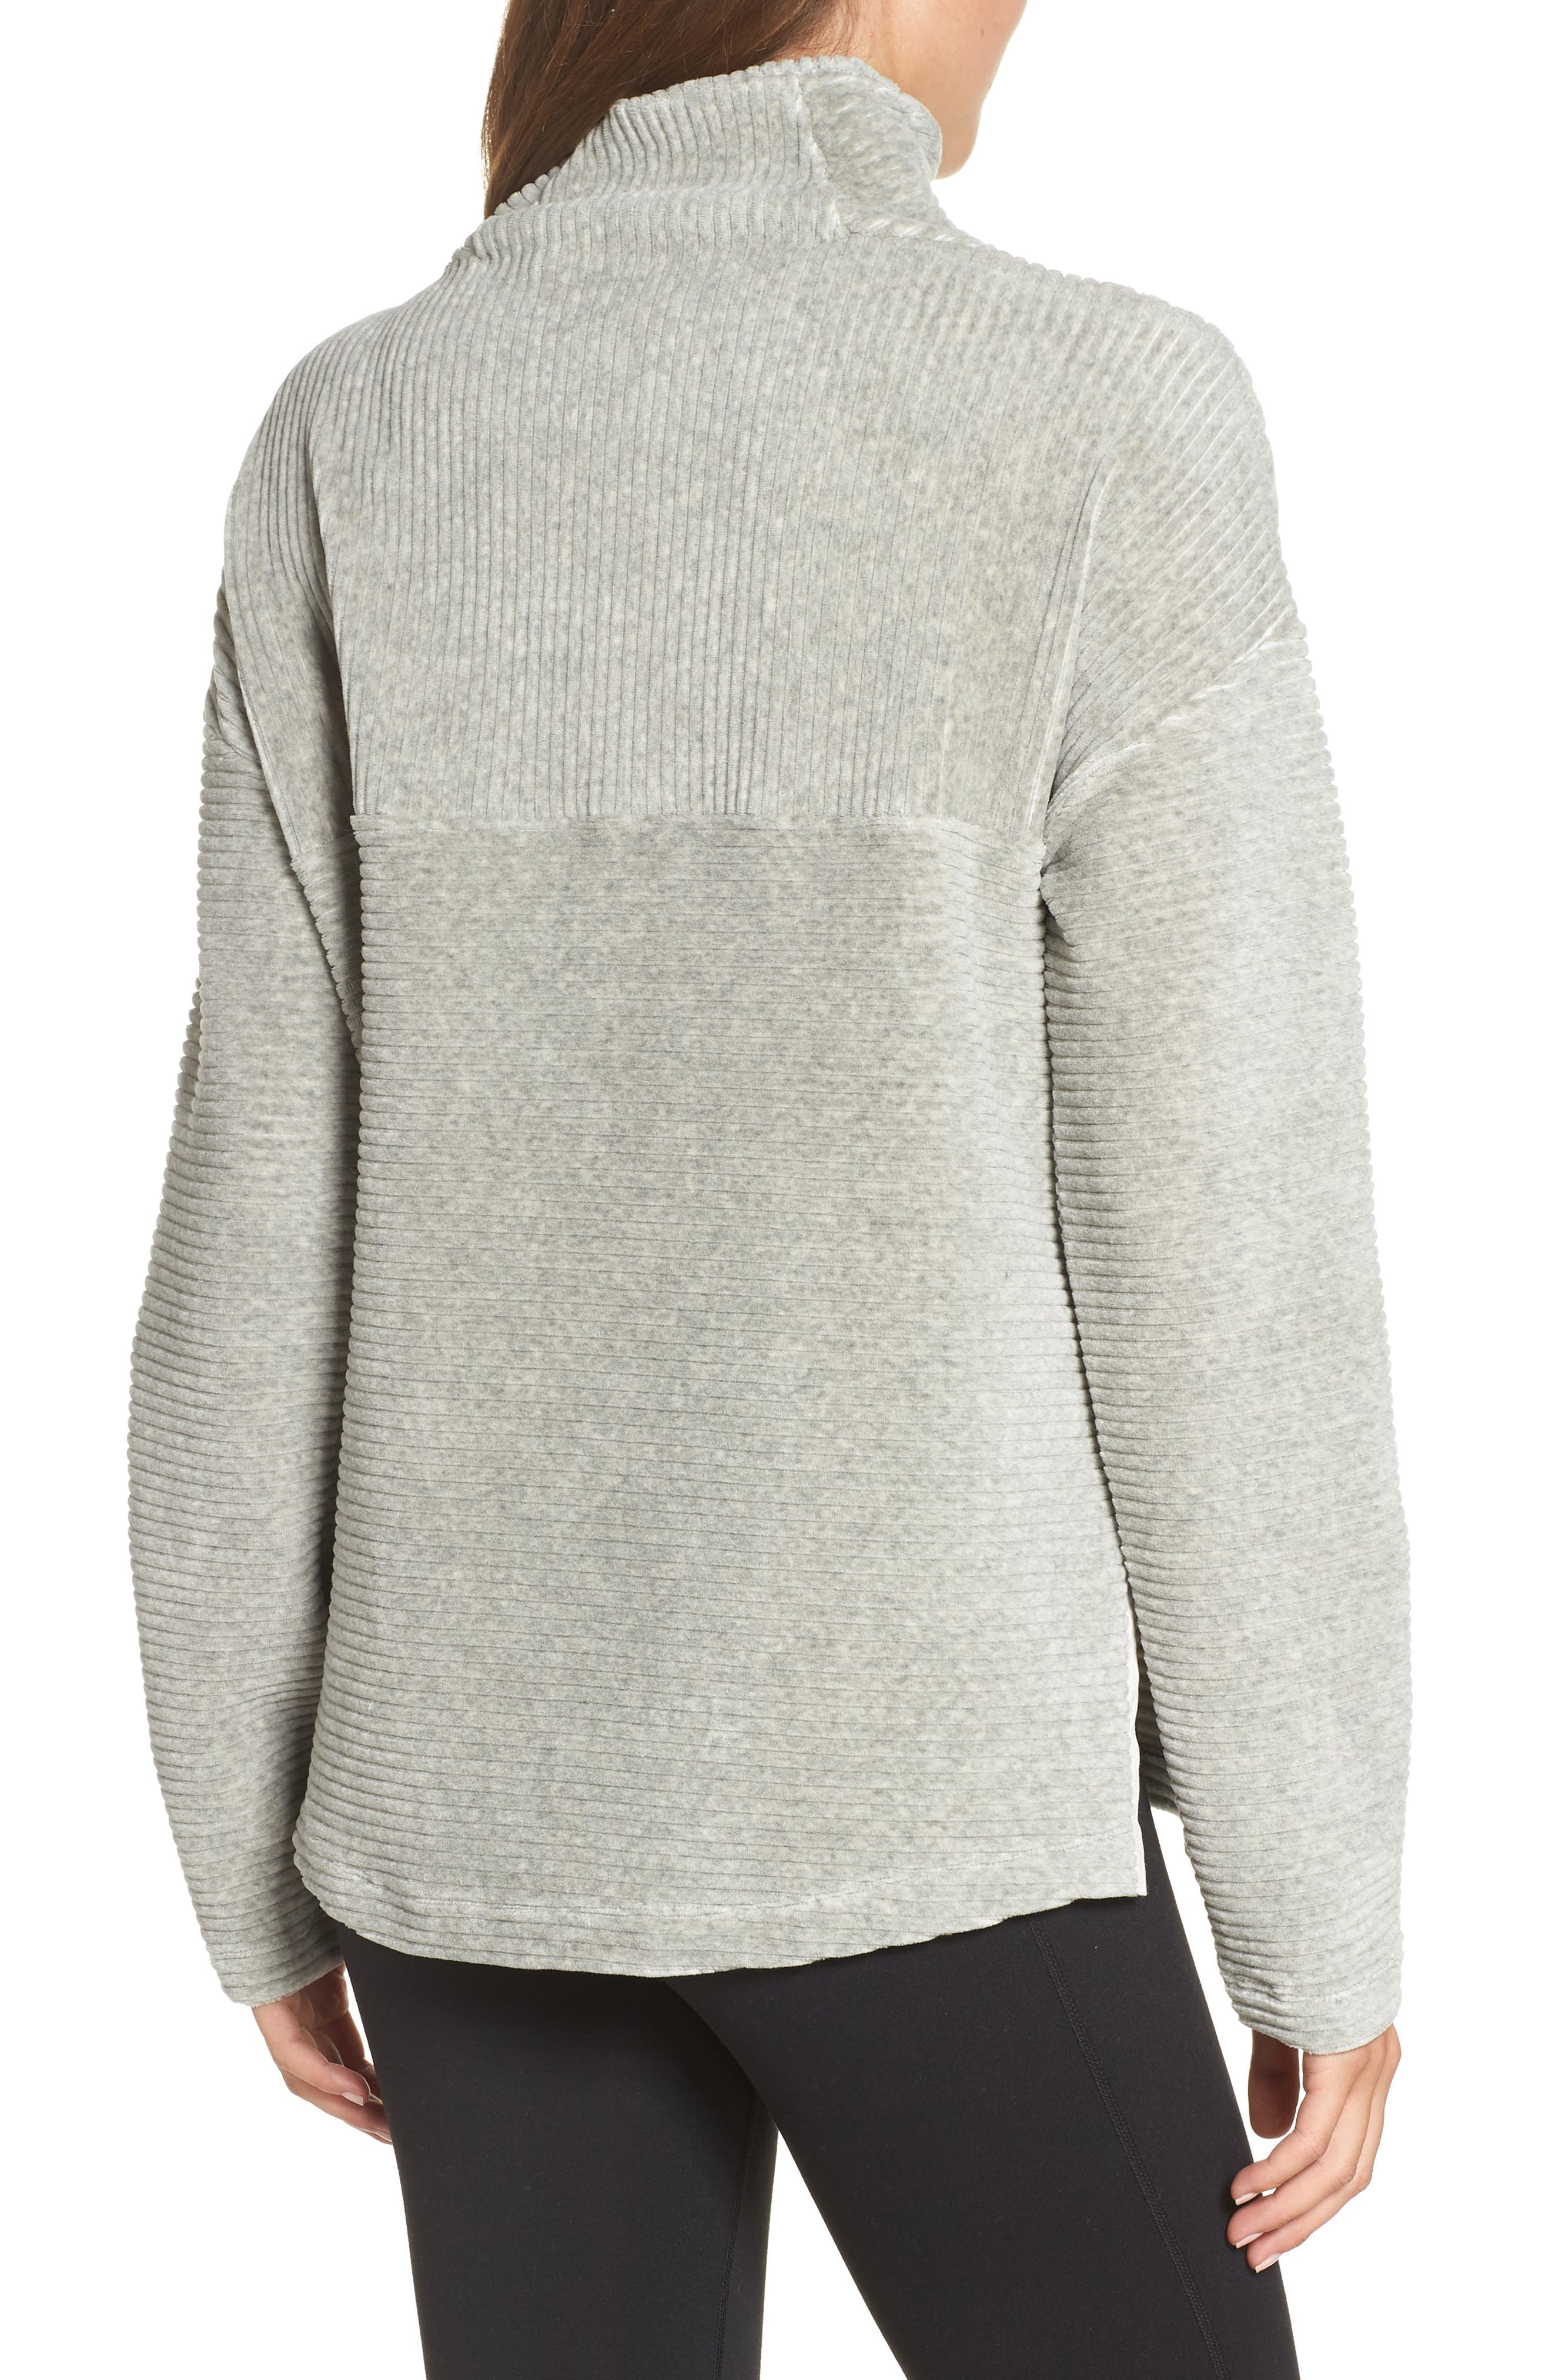 Bright Side Pullover,                             Alternate thumbnail 2, color,                             GREY CRYSTAL